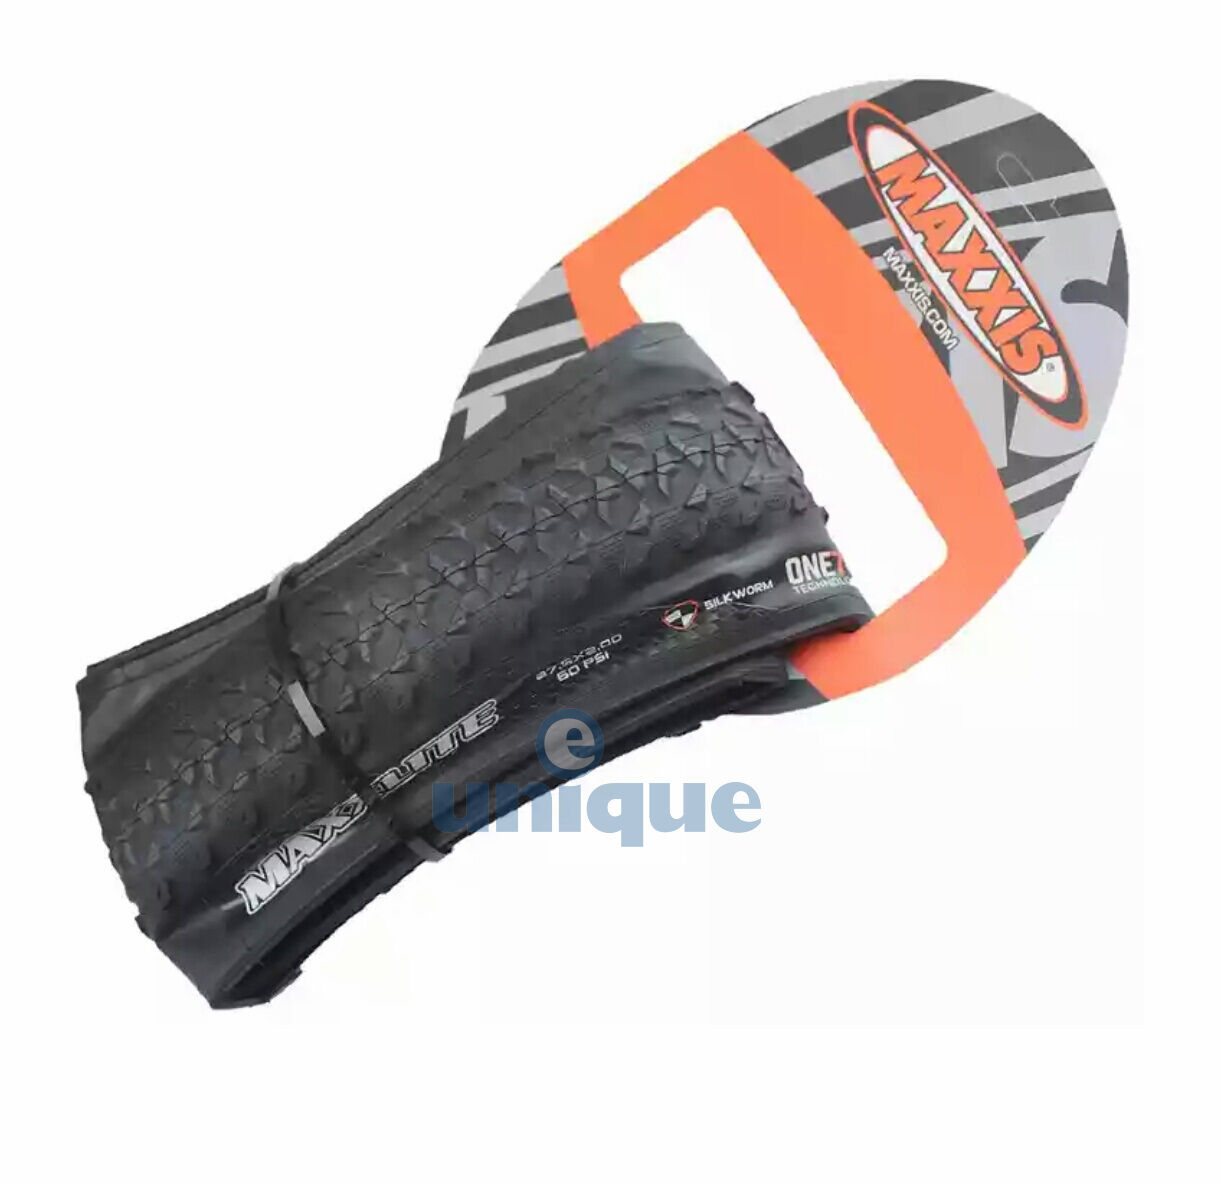 MAXXIS Maxxlite M324 Cross Country Racing Foldable MTB Tire 27.5  x 2.0 170TPI  quality first consumers first